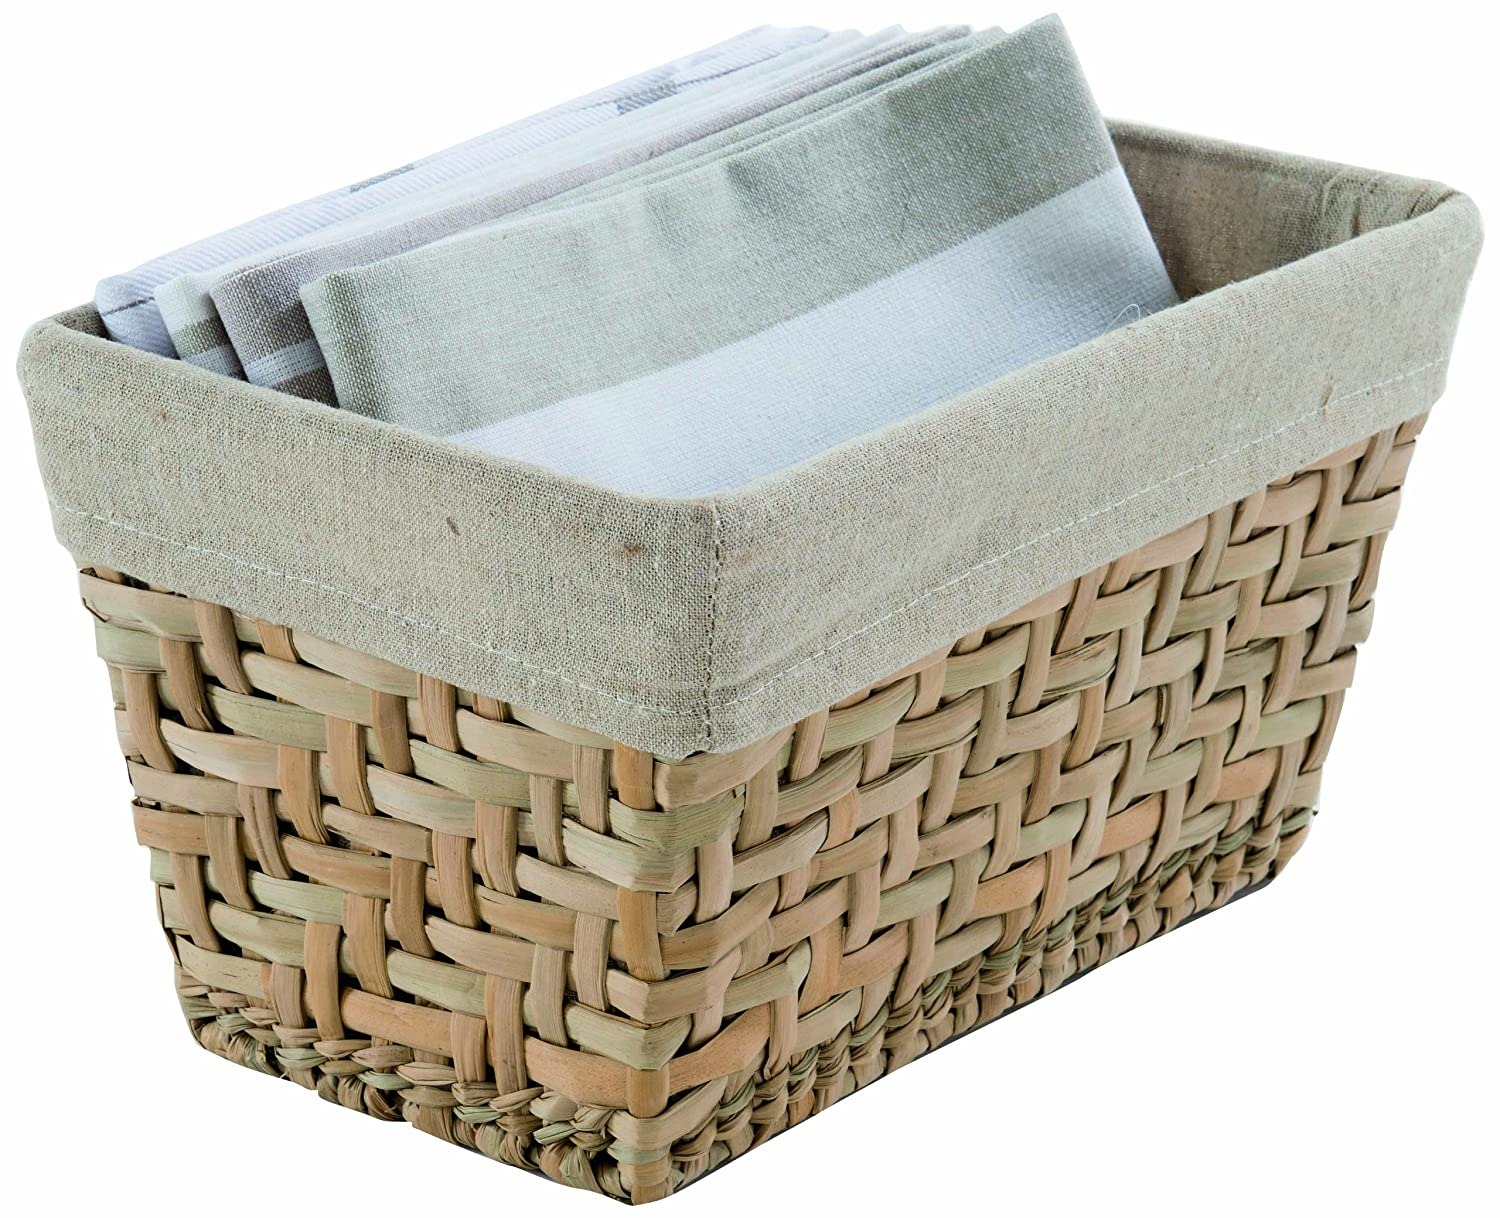 Compactor Fiesta Small Seagrass Storage Basket with Lining, Brown C.I.E. Europe B00G69LZO4